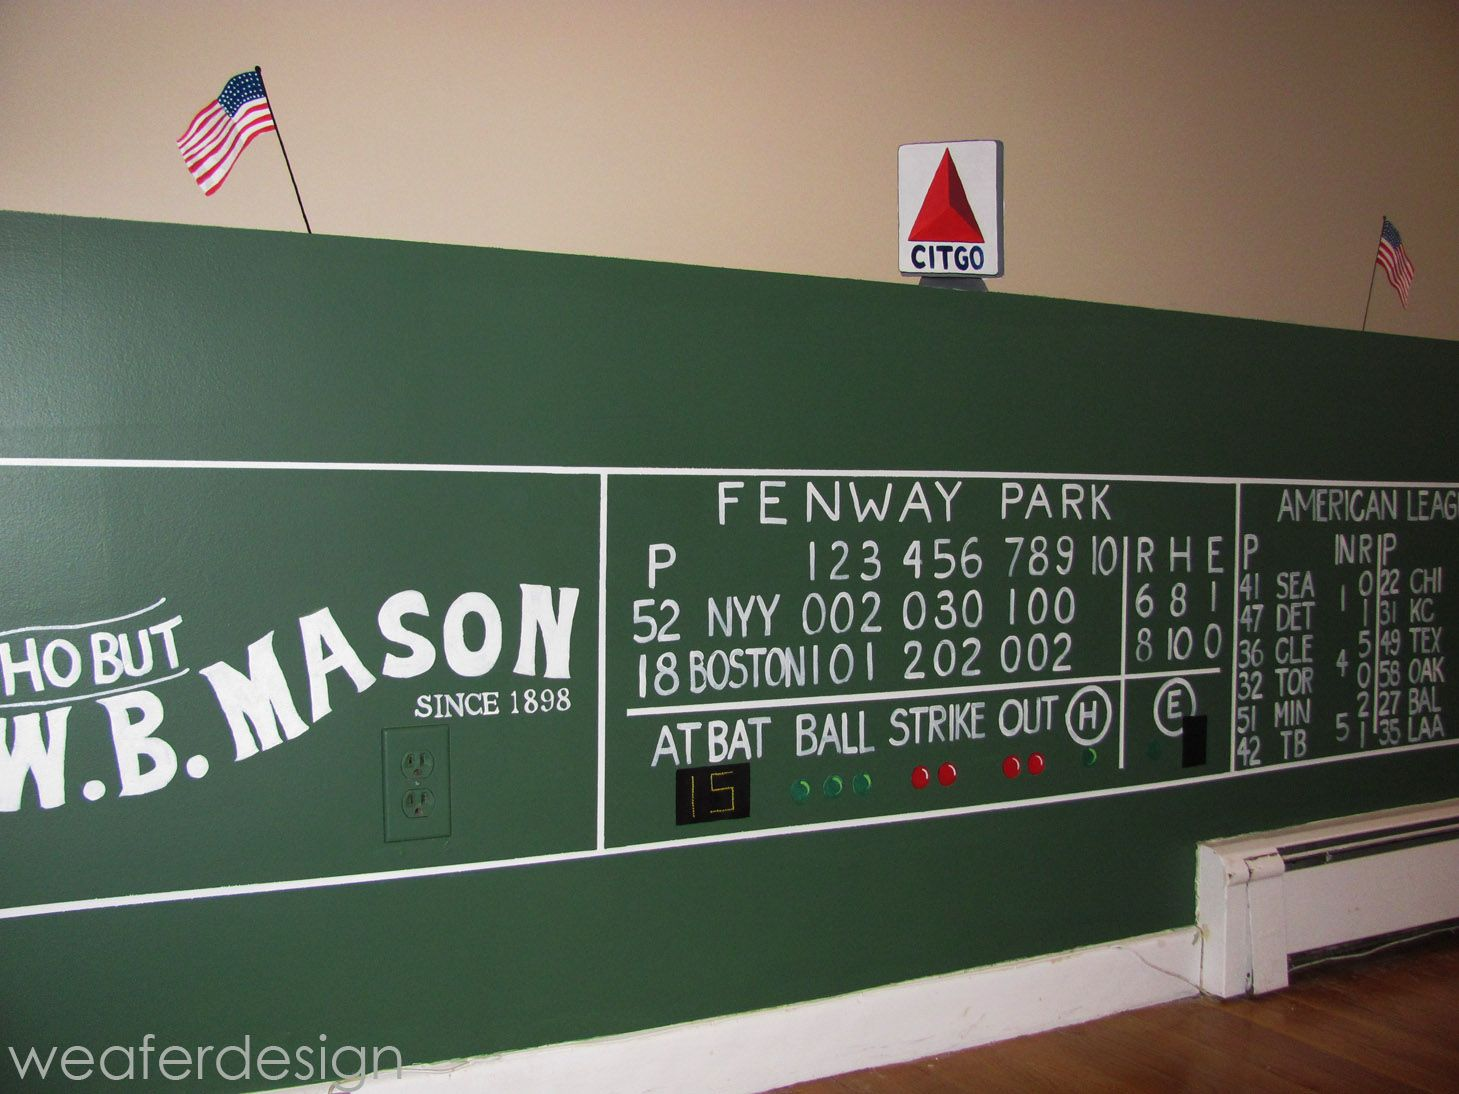 Red Sox Green Monster Fenway Scoreboard Kids Room Hand